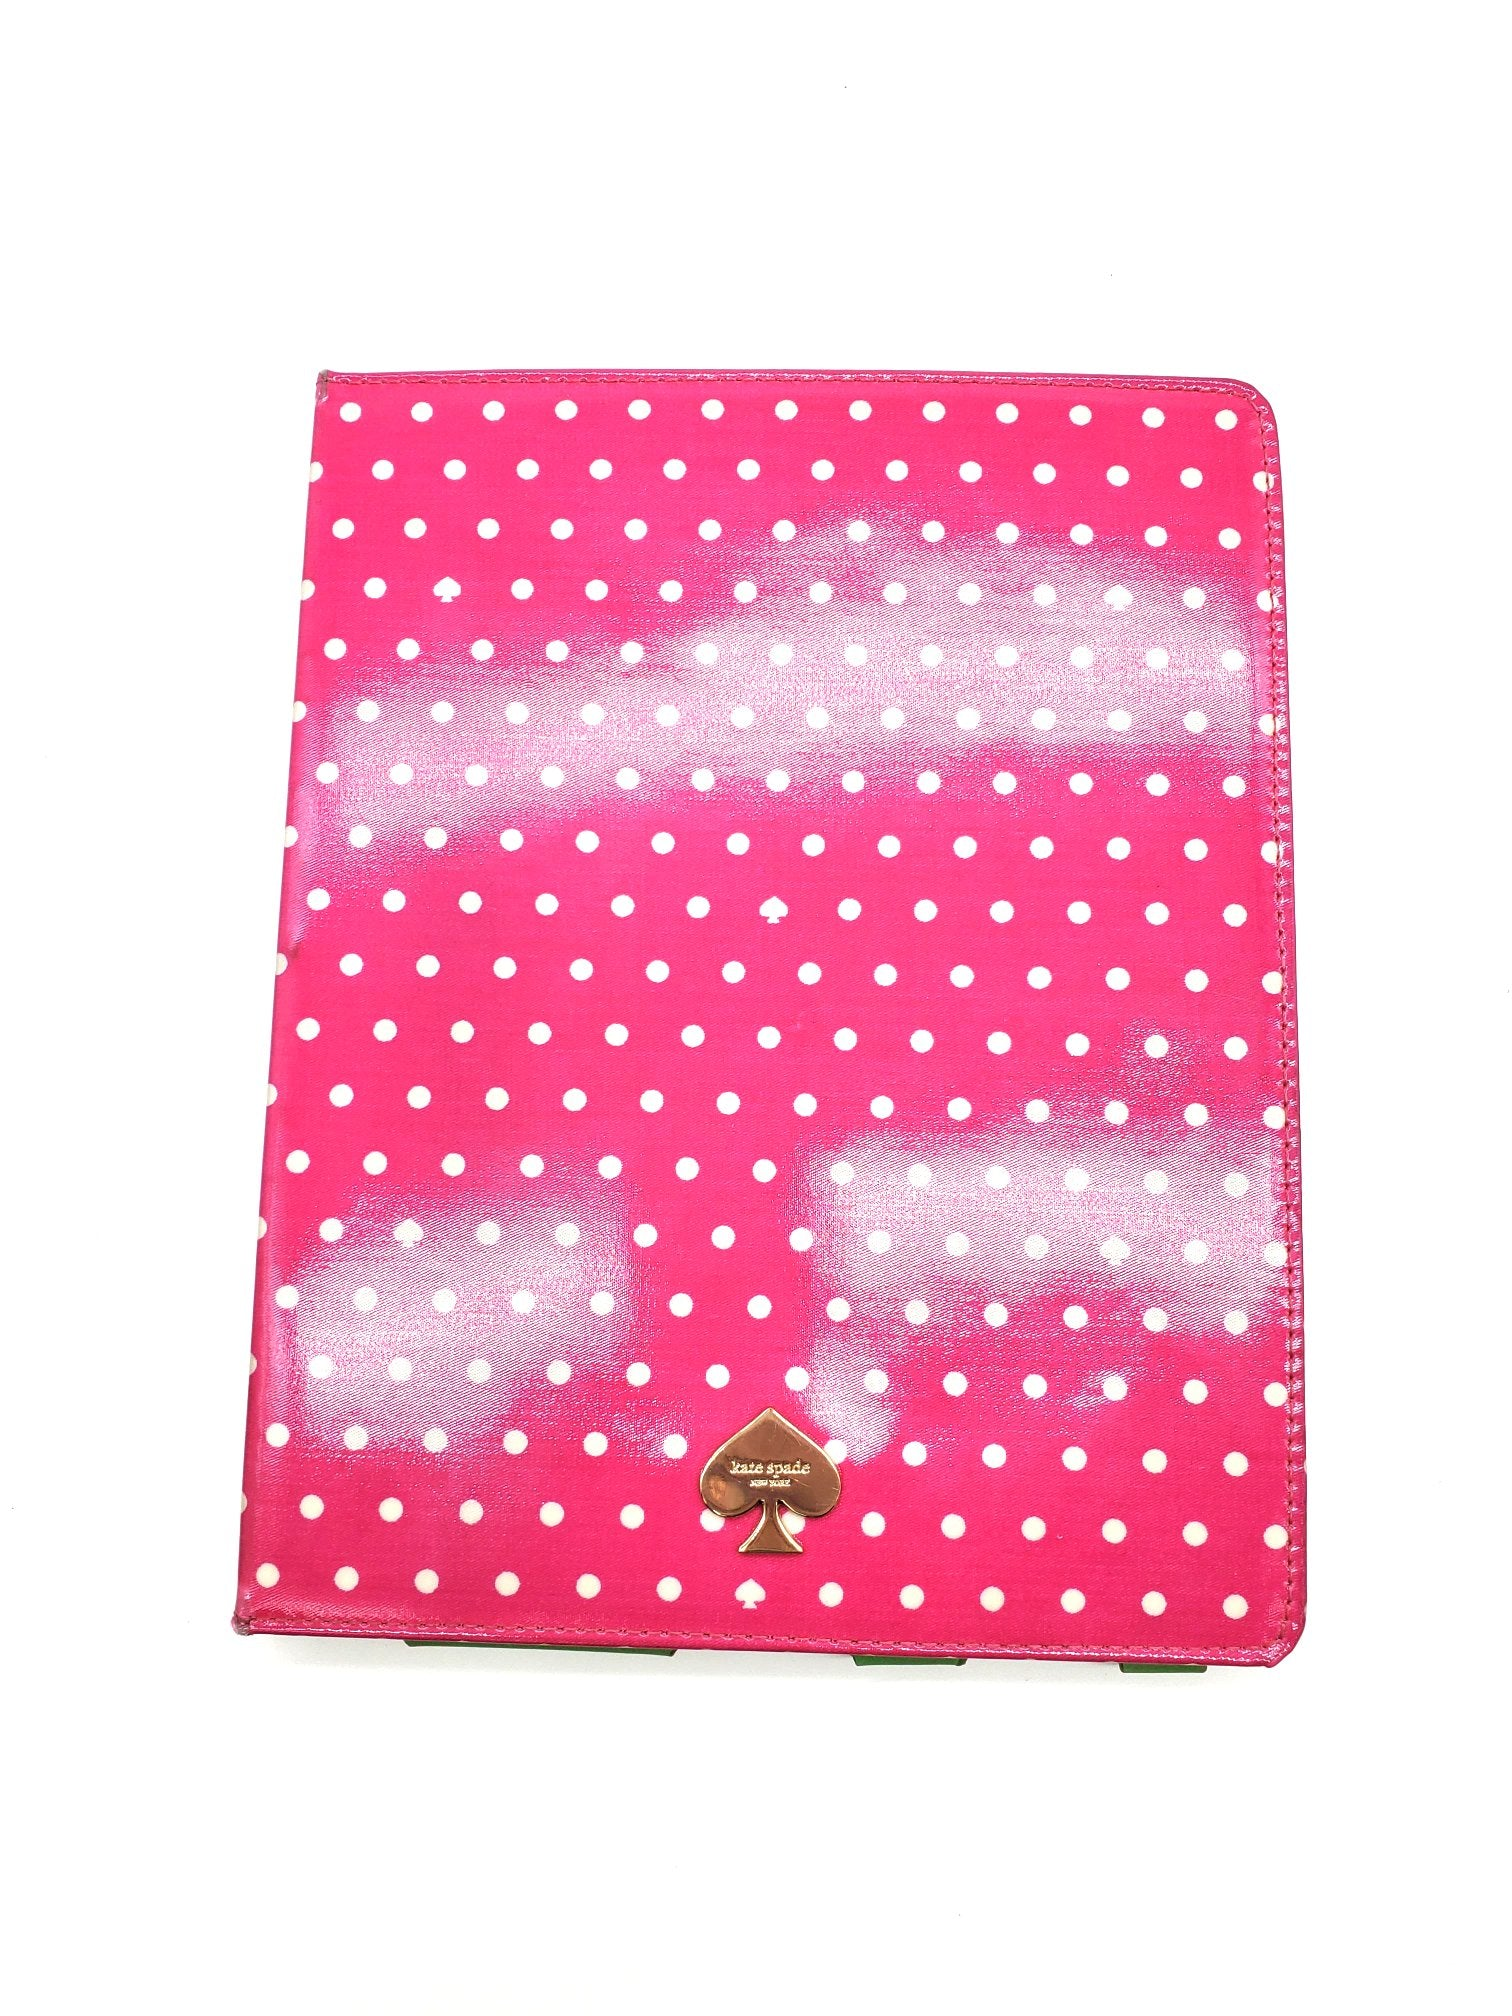 Primary Photo - BRAND: KATE SPADE <BR>STYLE: IPAD CASE<BR>COLOR: POLKADOT <BR>SKU: 262-26275-63873R<BR>AS IS <BR>DESIGNER ITEM FINAL SALE